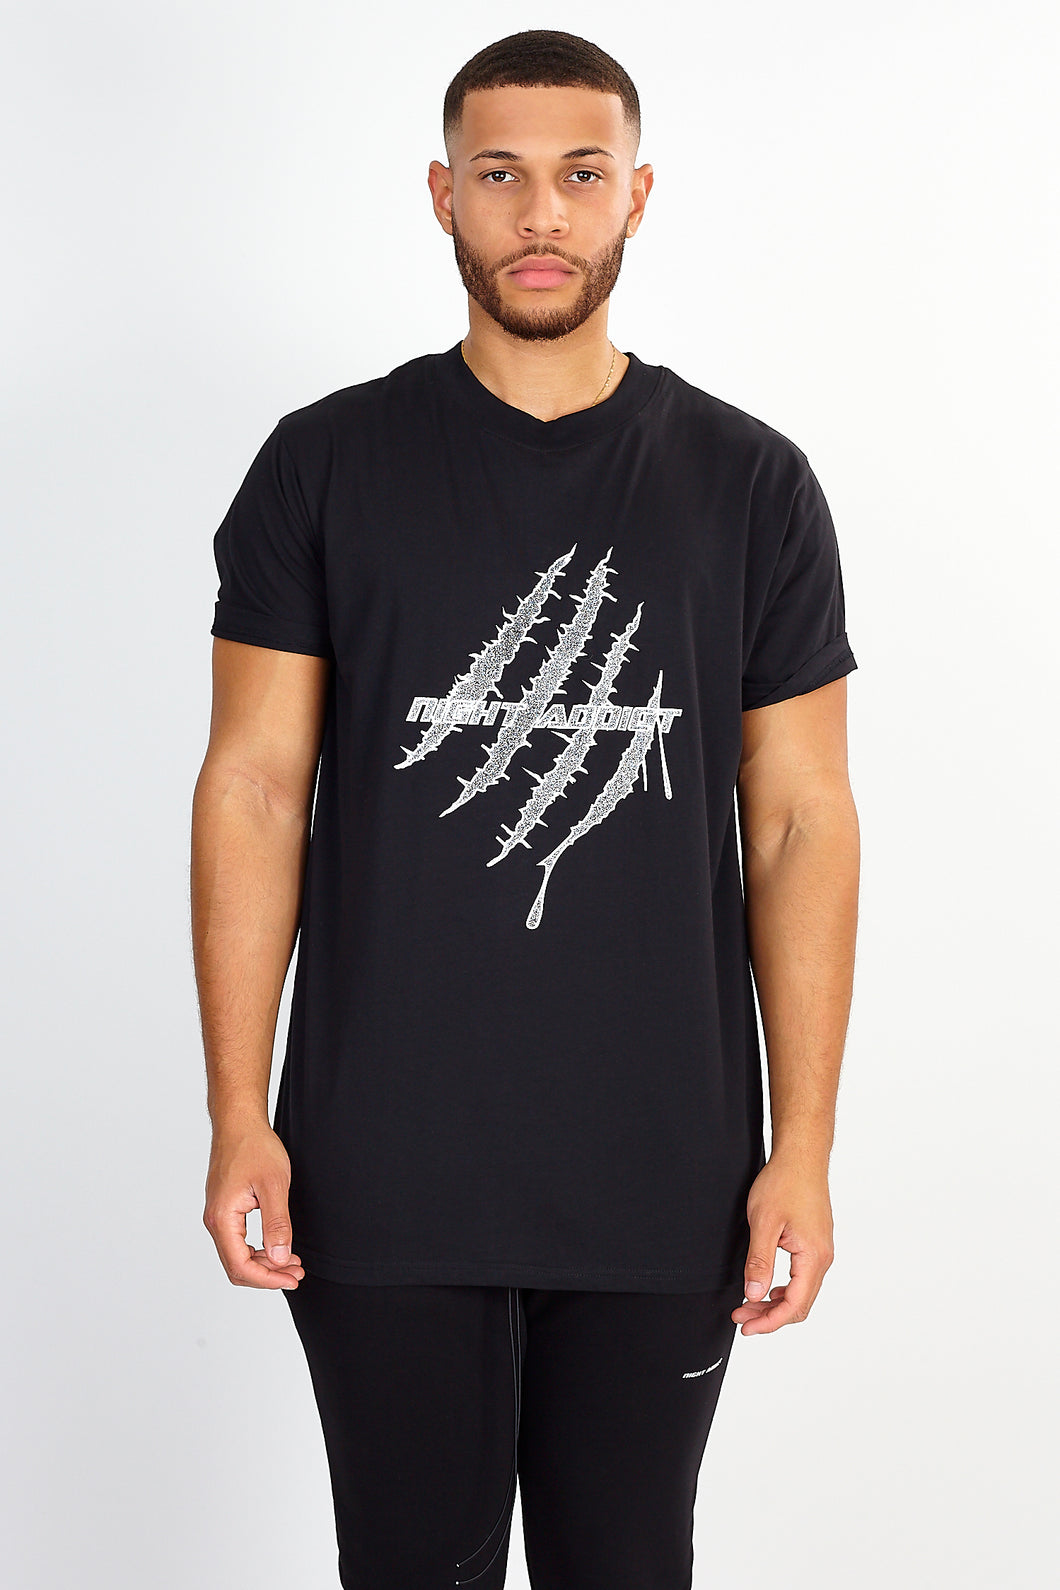 NIGHT ADDICT BLACK GLITTER PRINT TEE FRONT